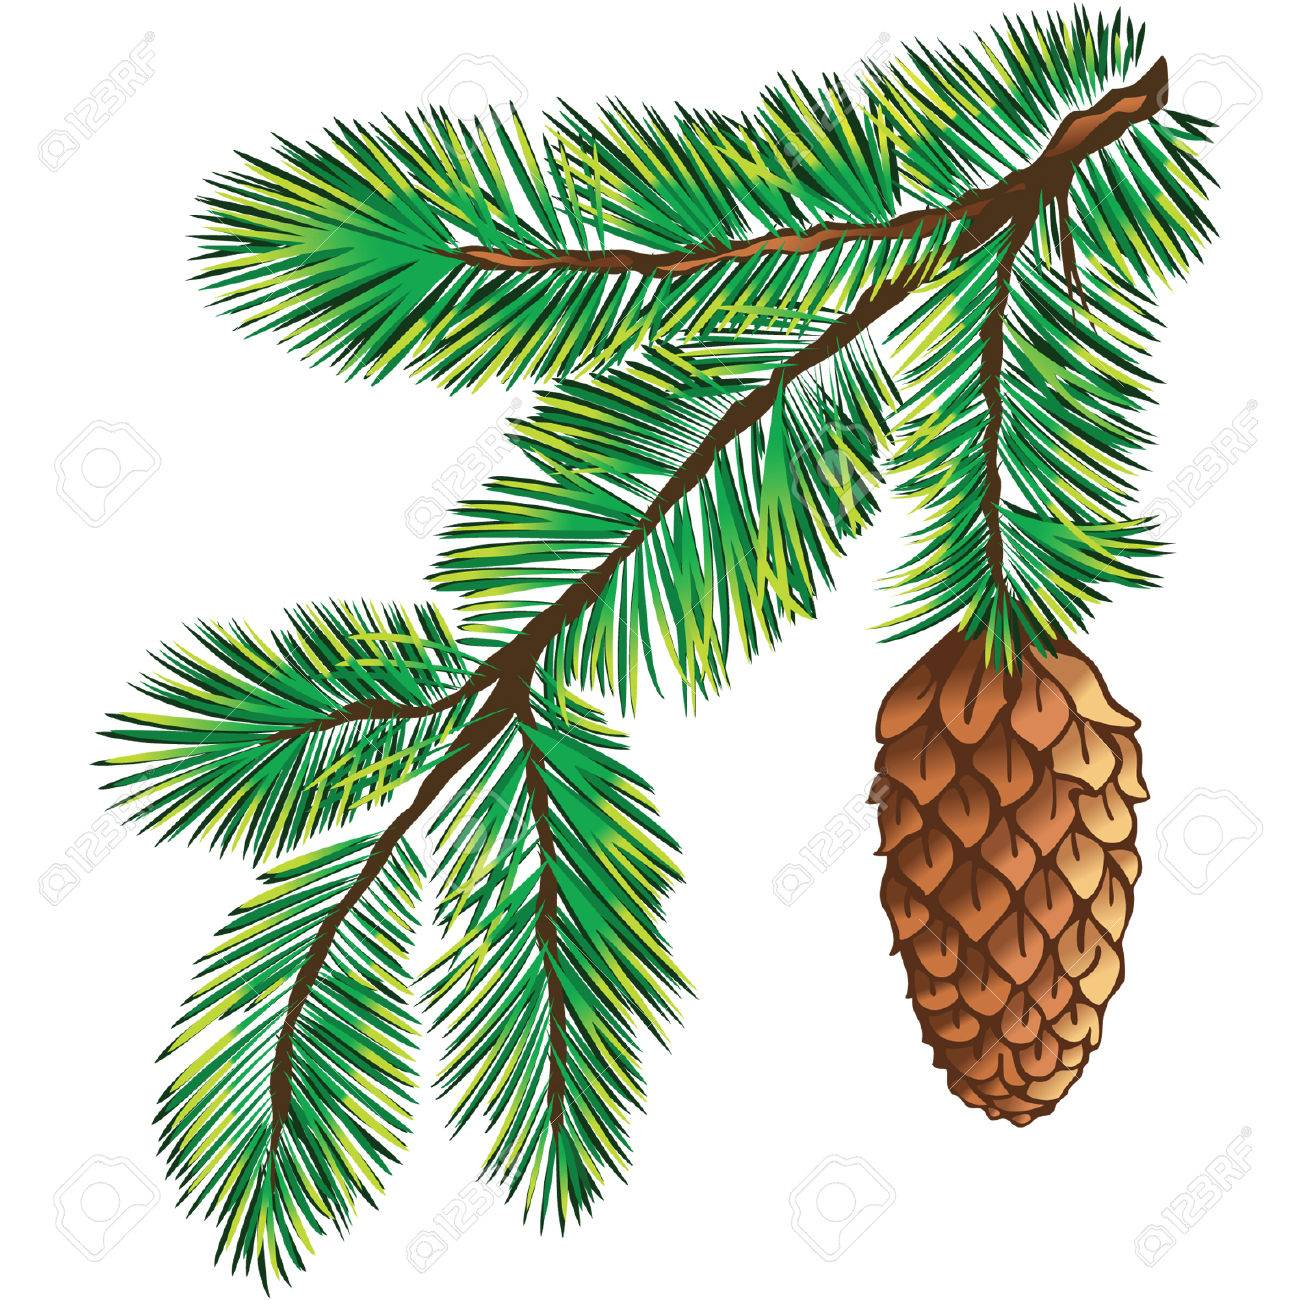 Green branch of pine-tree on white background Stock Vector - 7901013